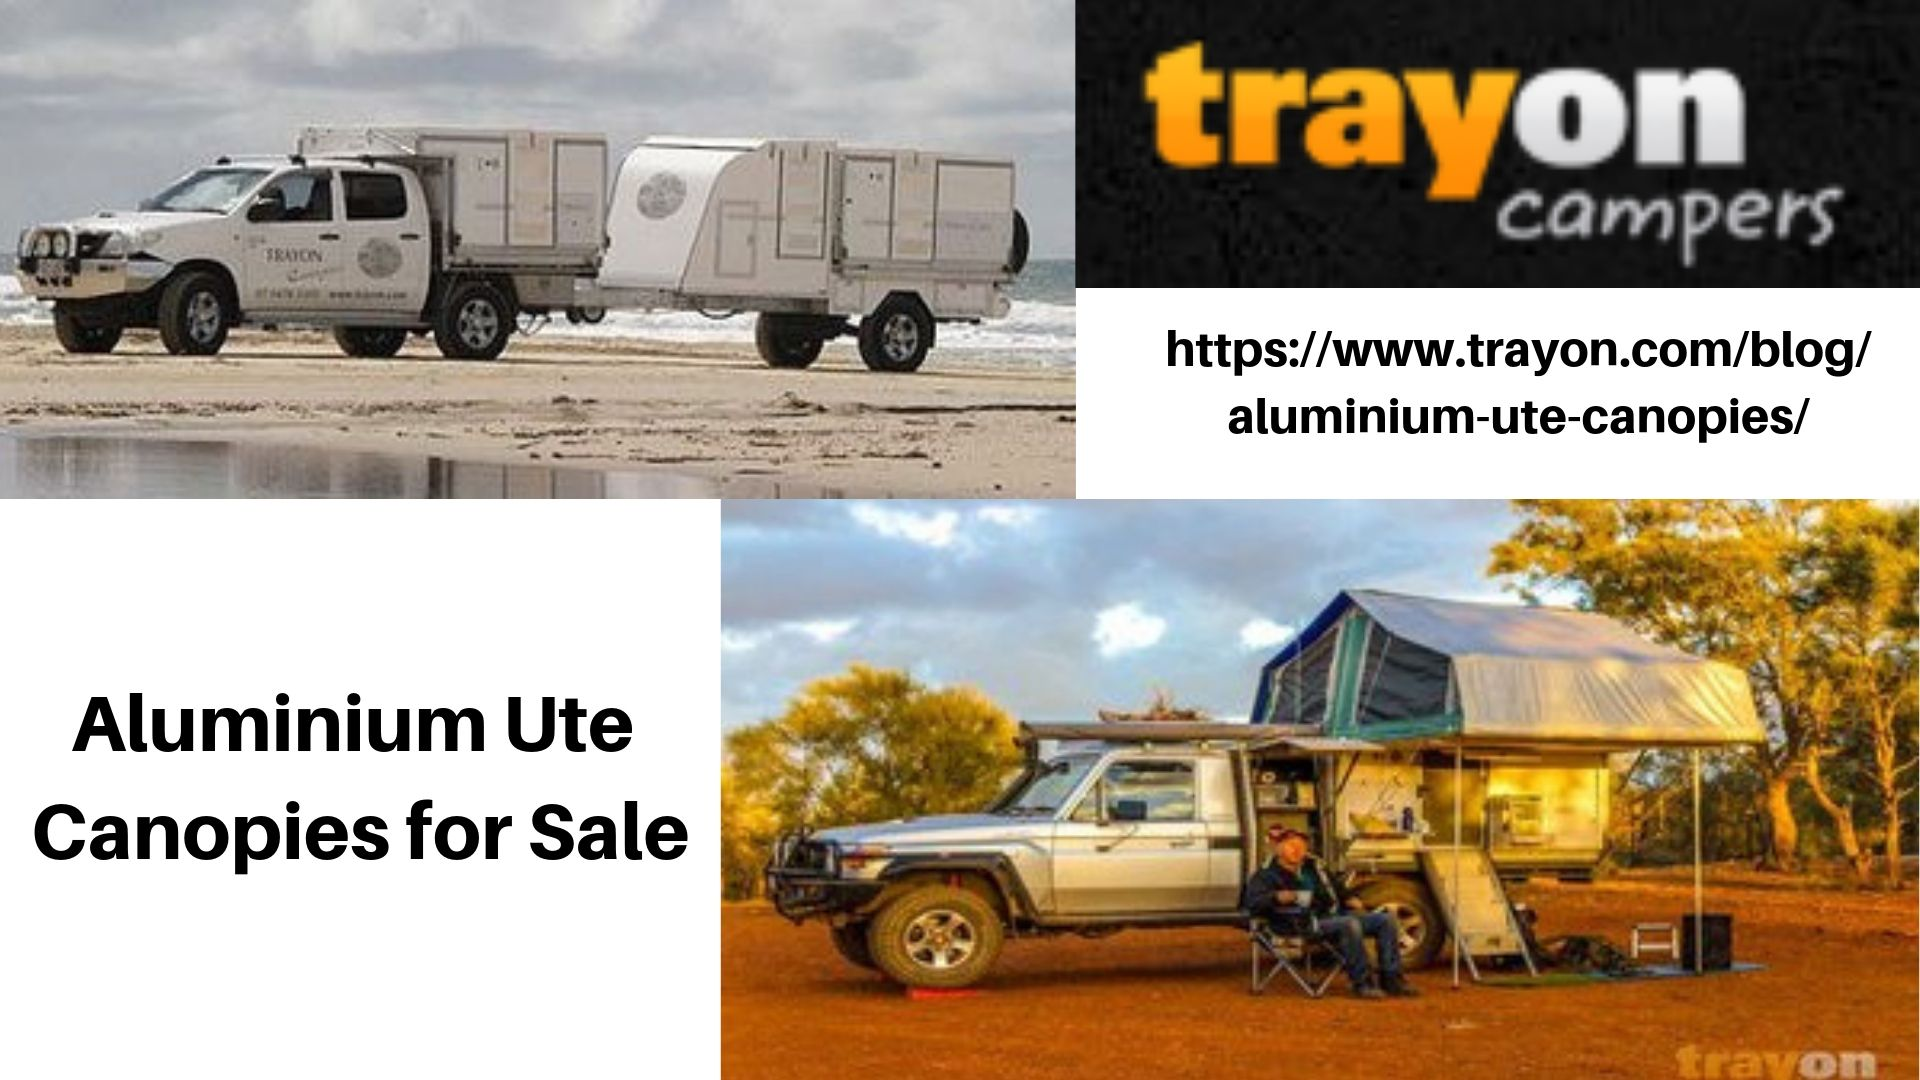 Best Aluminium Ute Canopies for sale! Traymate is the